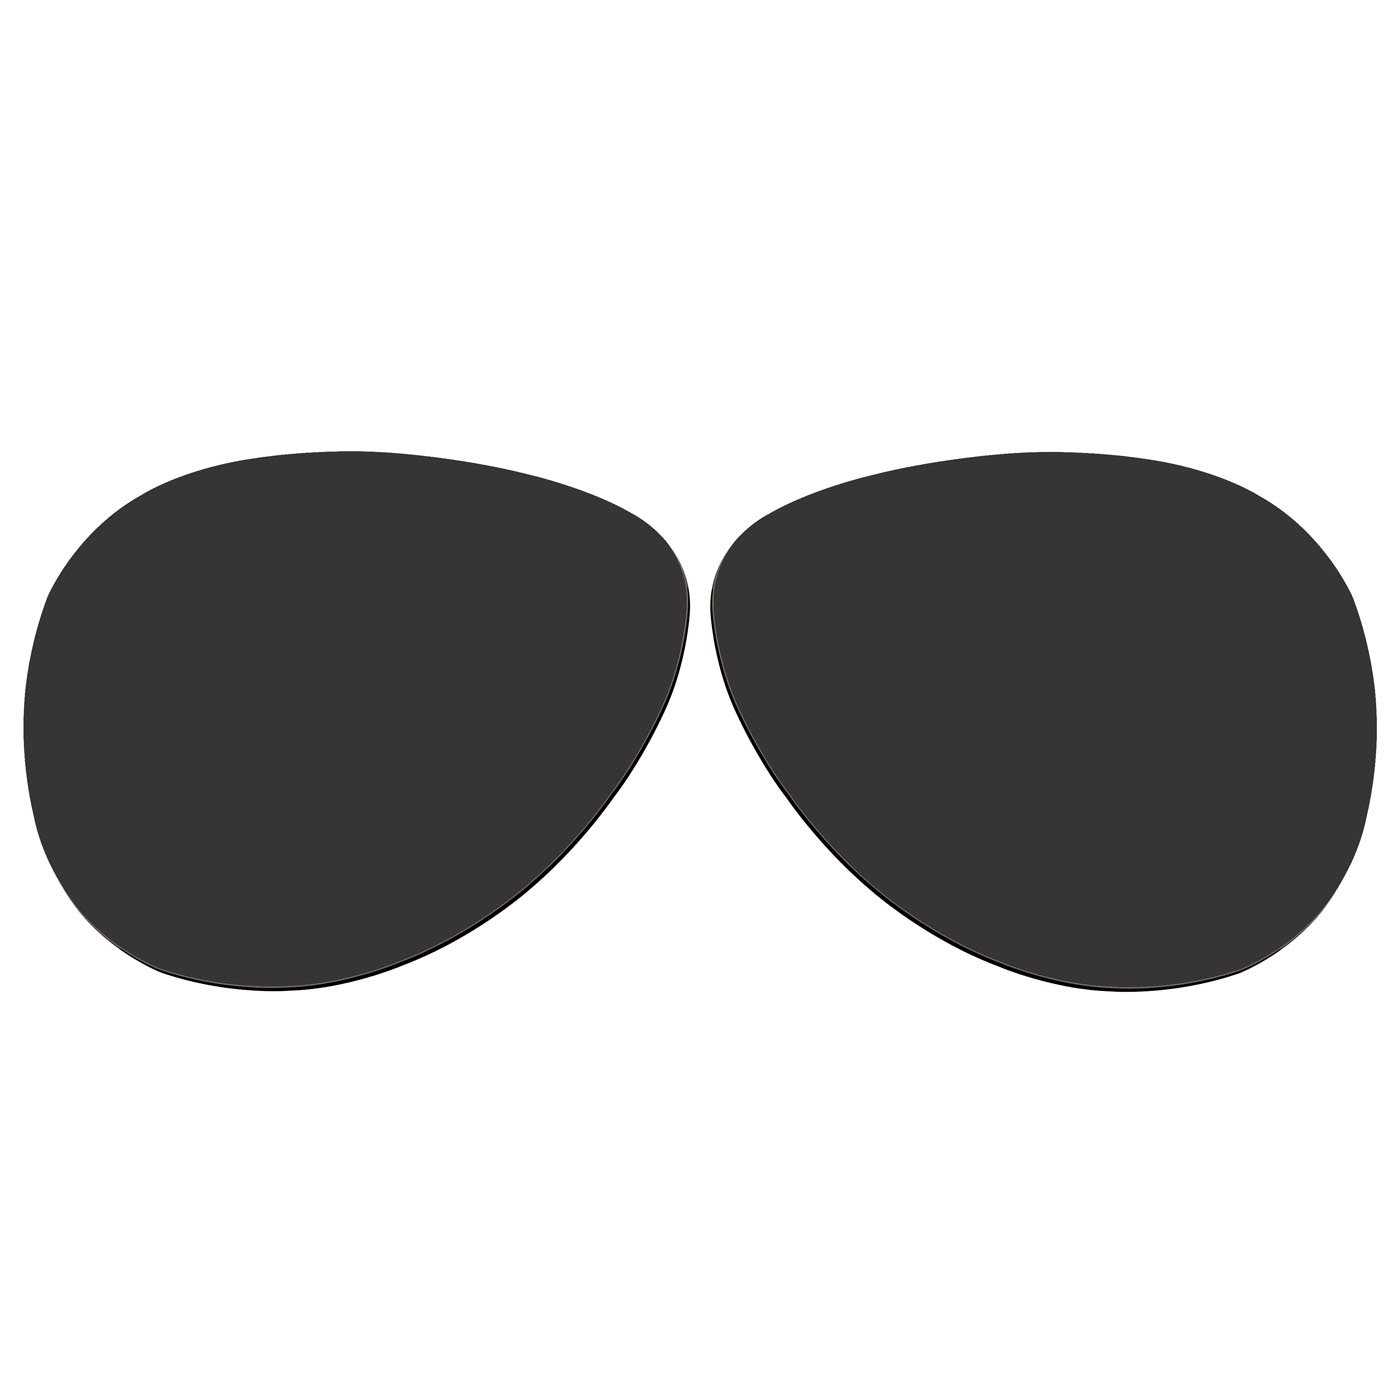 73846f2d67 ACOMPATIBLE Replacement Lenses for Oakley Caveat Sunglasses OO4054 (Black -  Polarized)  Amazon.co.uk  Sports   Outdoors